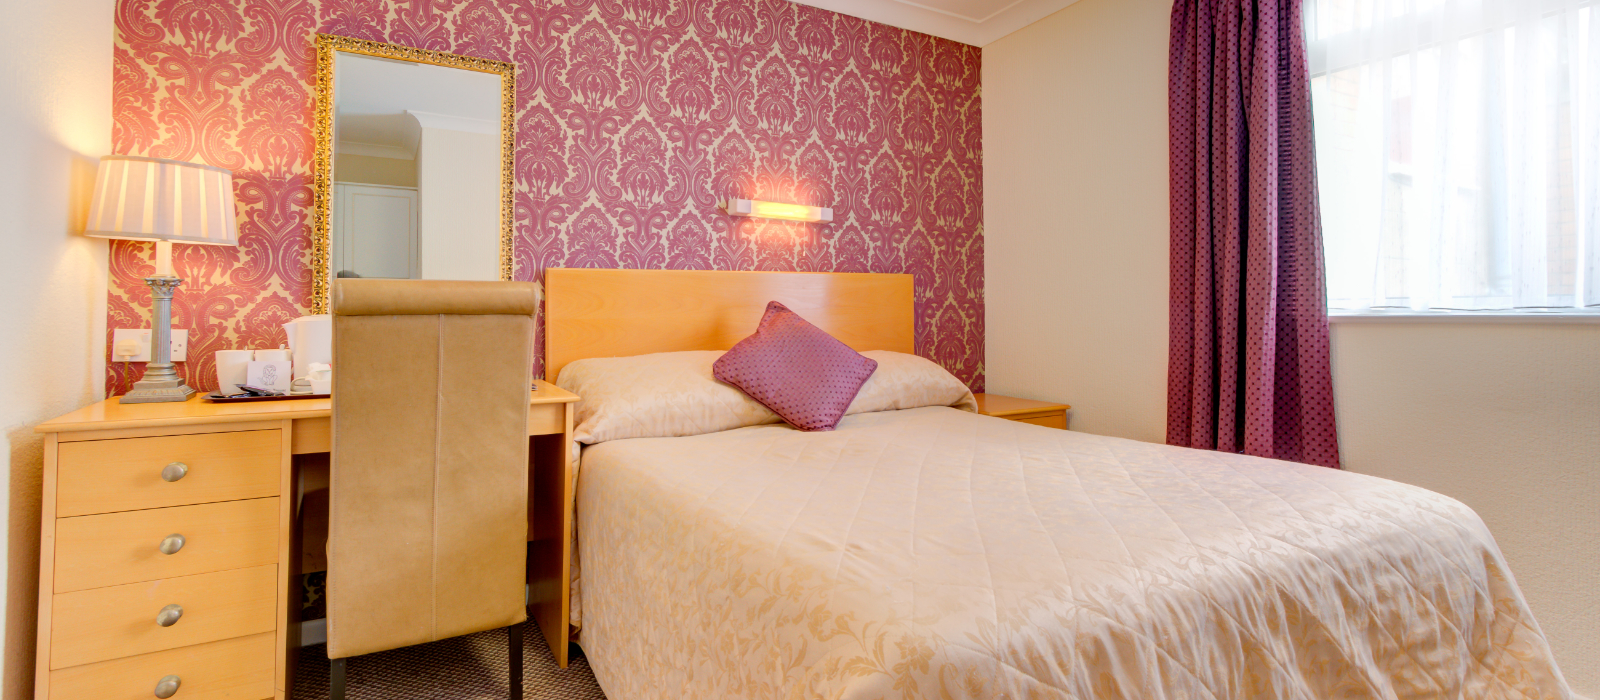 45 en-suite Bedrooms in Blackpool